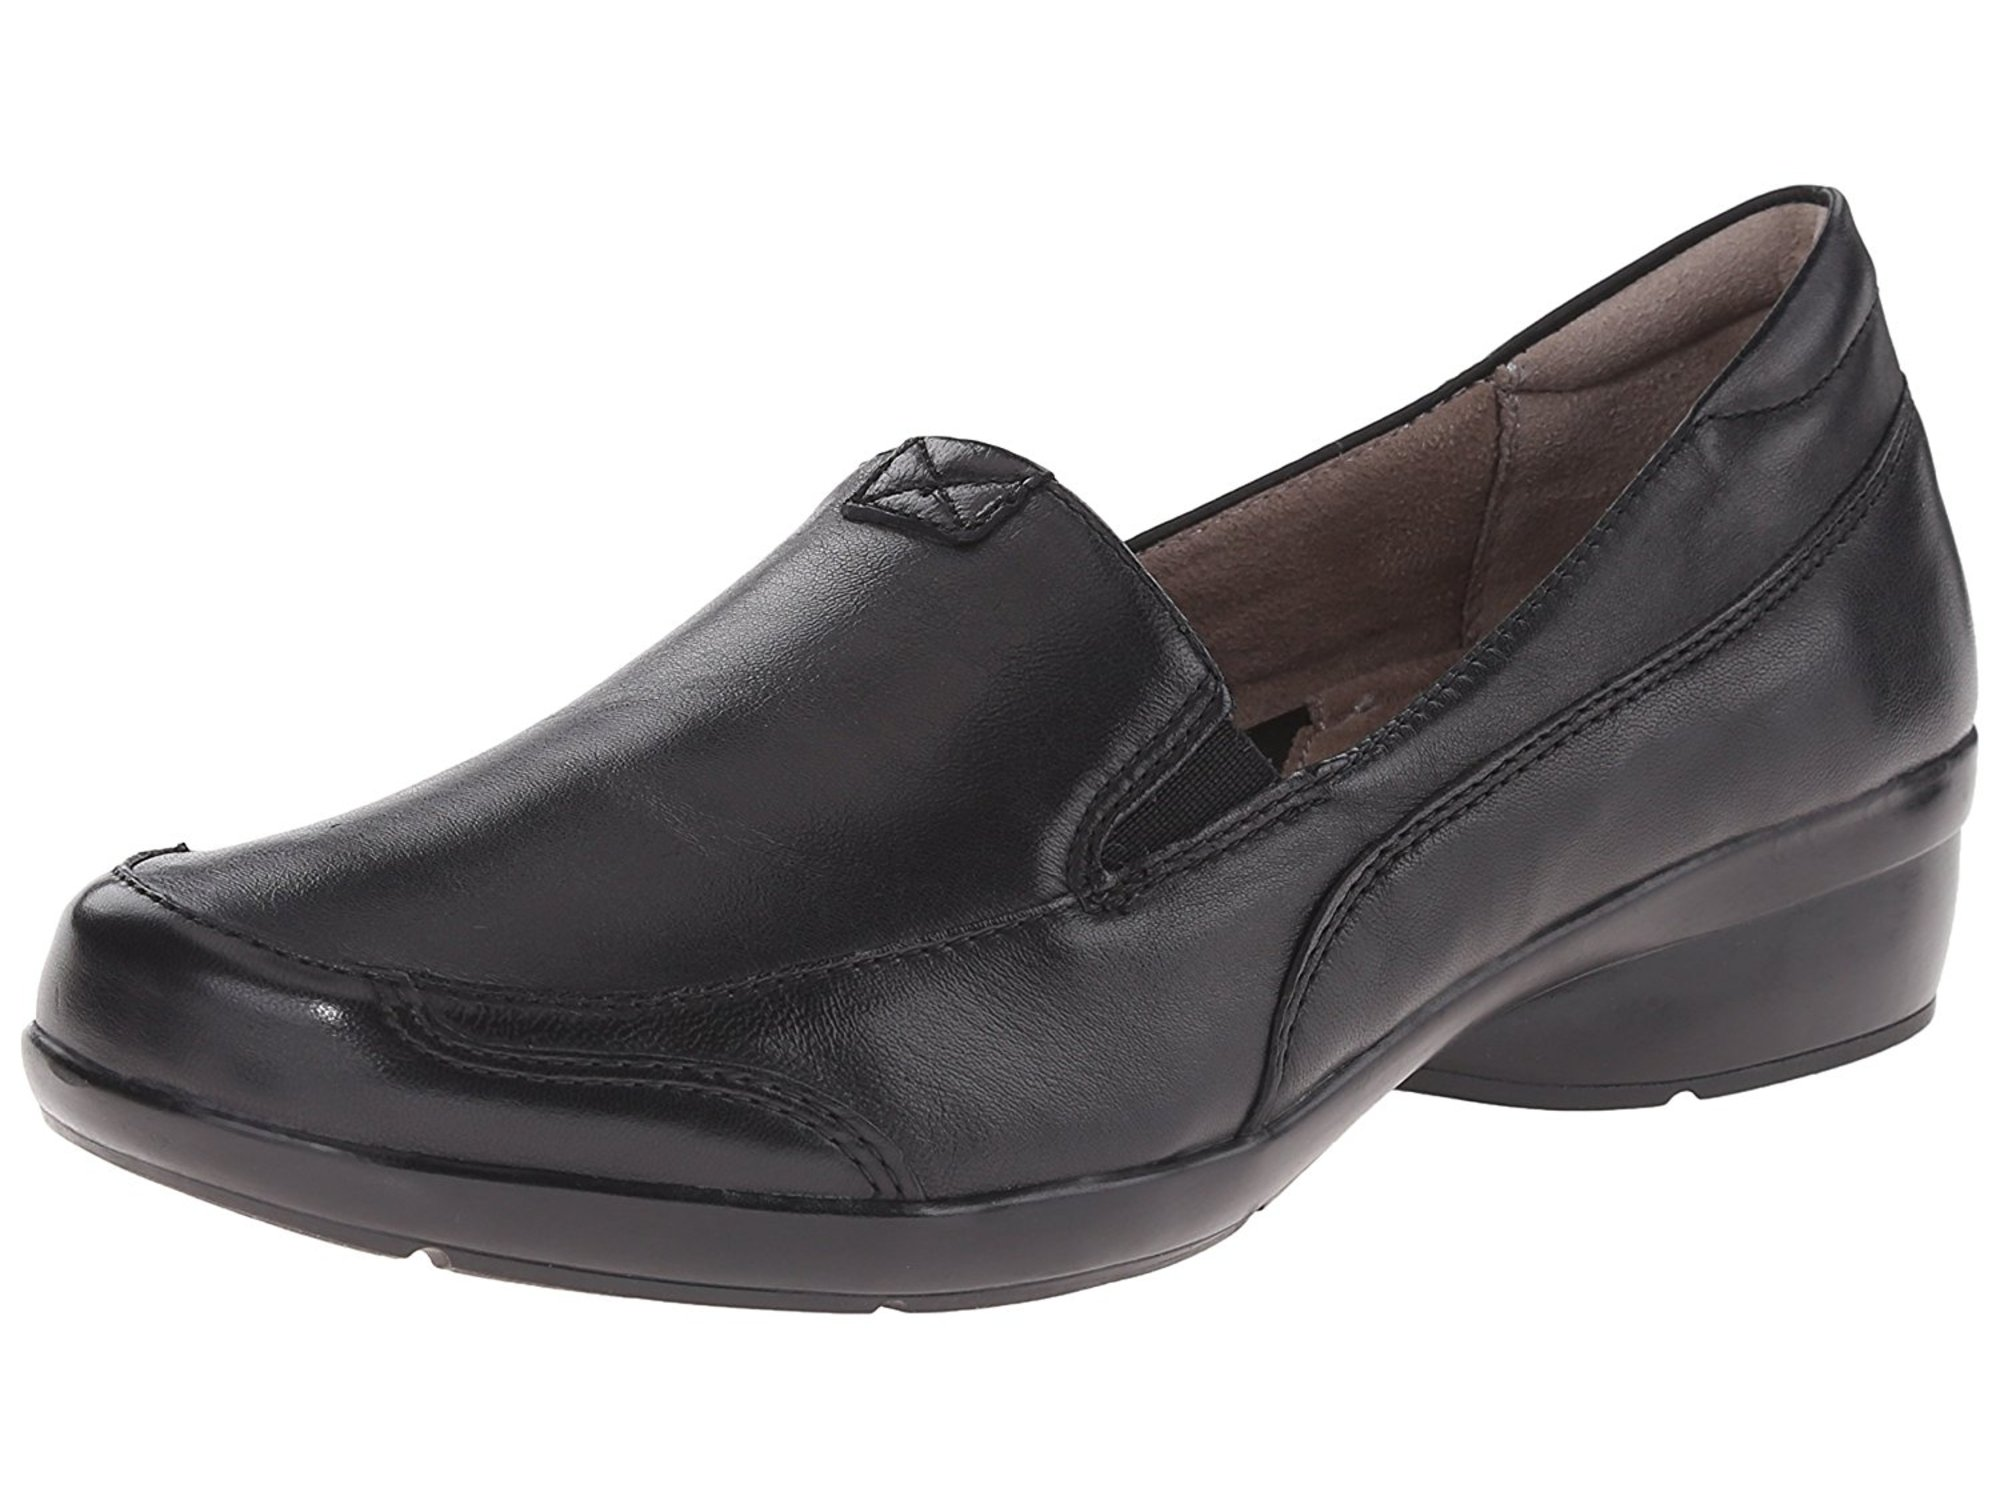 Naturalizer Womens channing Leather Almond Toe Loafers by Naturalizer